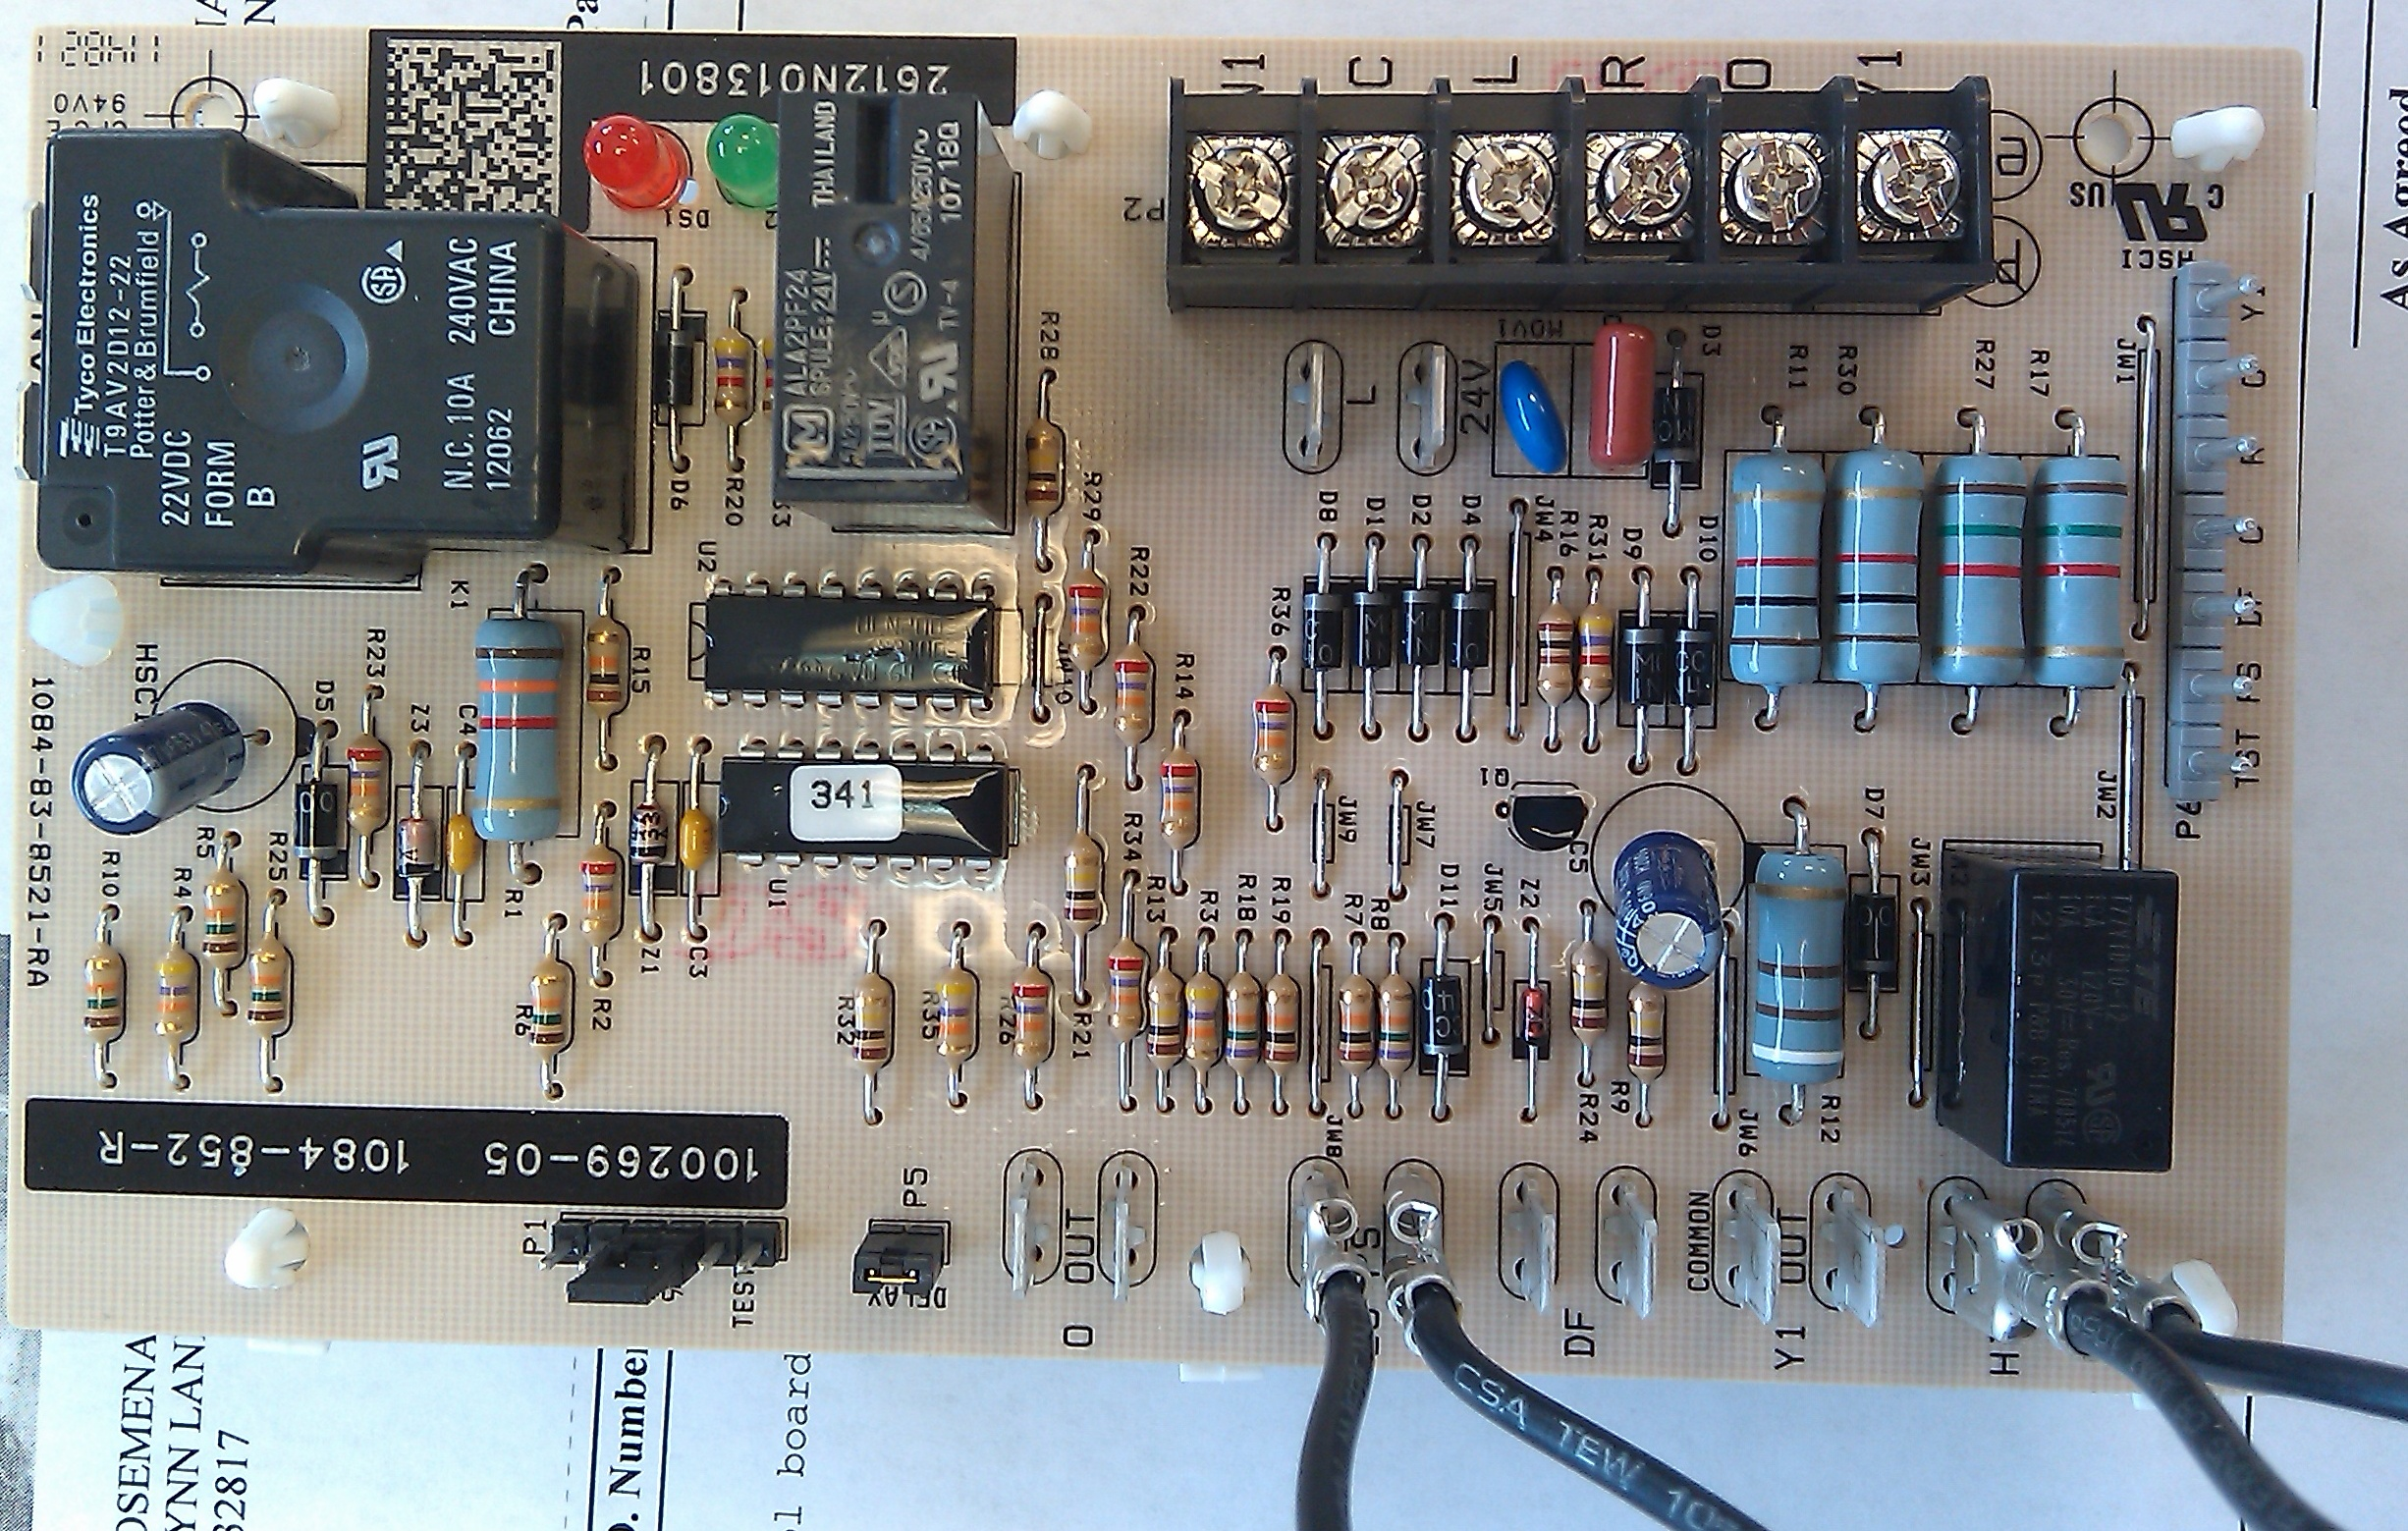 lennox heat pump thermostat wiring diagram solenoid an air conditioner carrier to a www need for 84w88 installation system